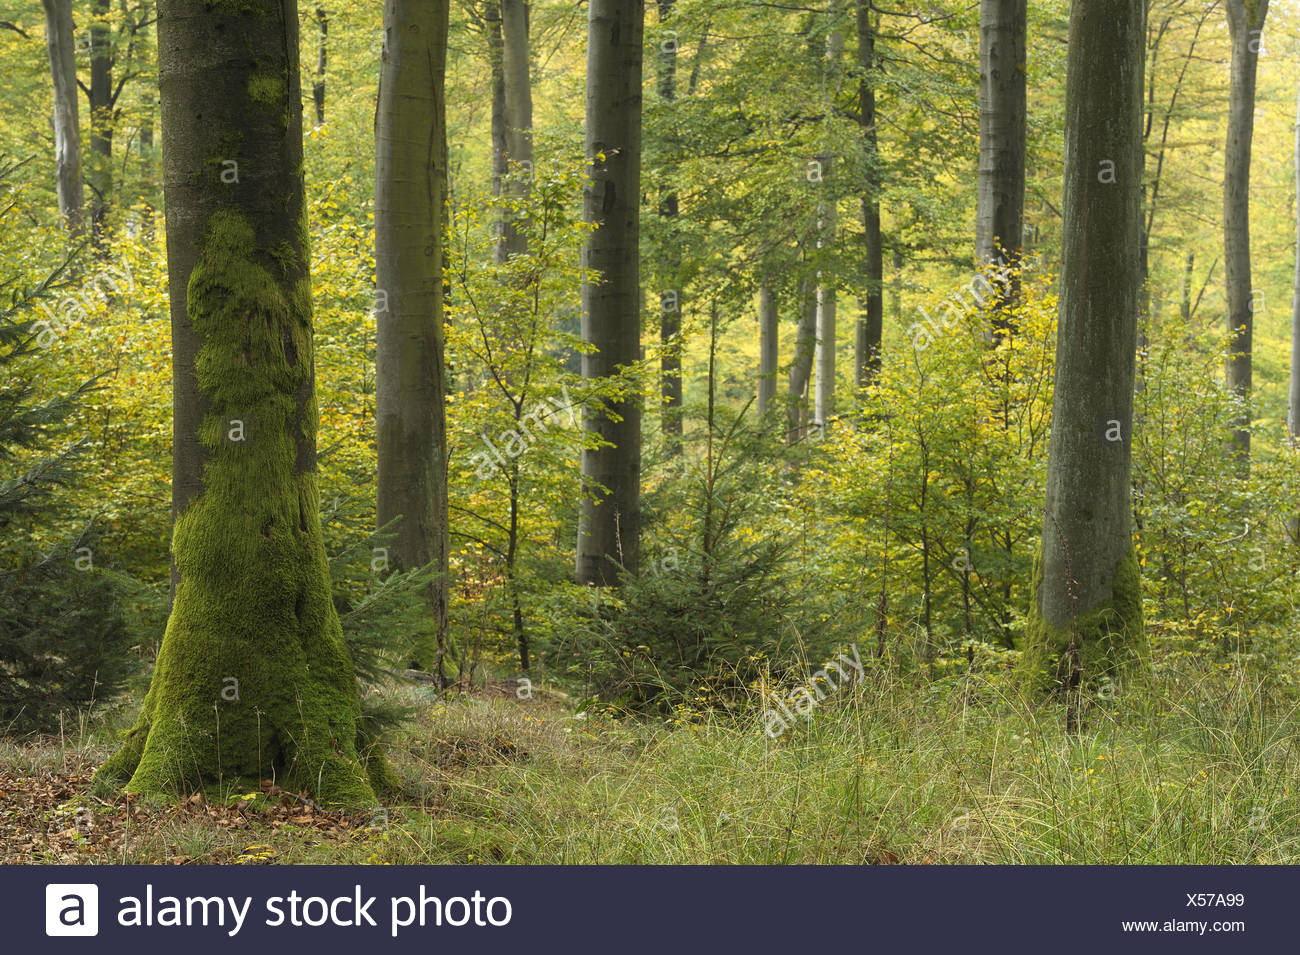 Beech forest in autumn, Spessart, Germany Stock Photo